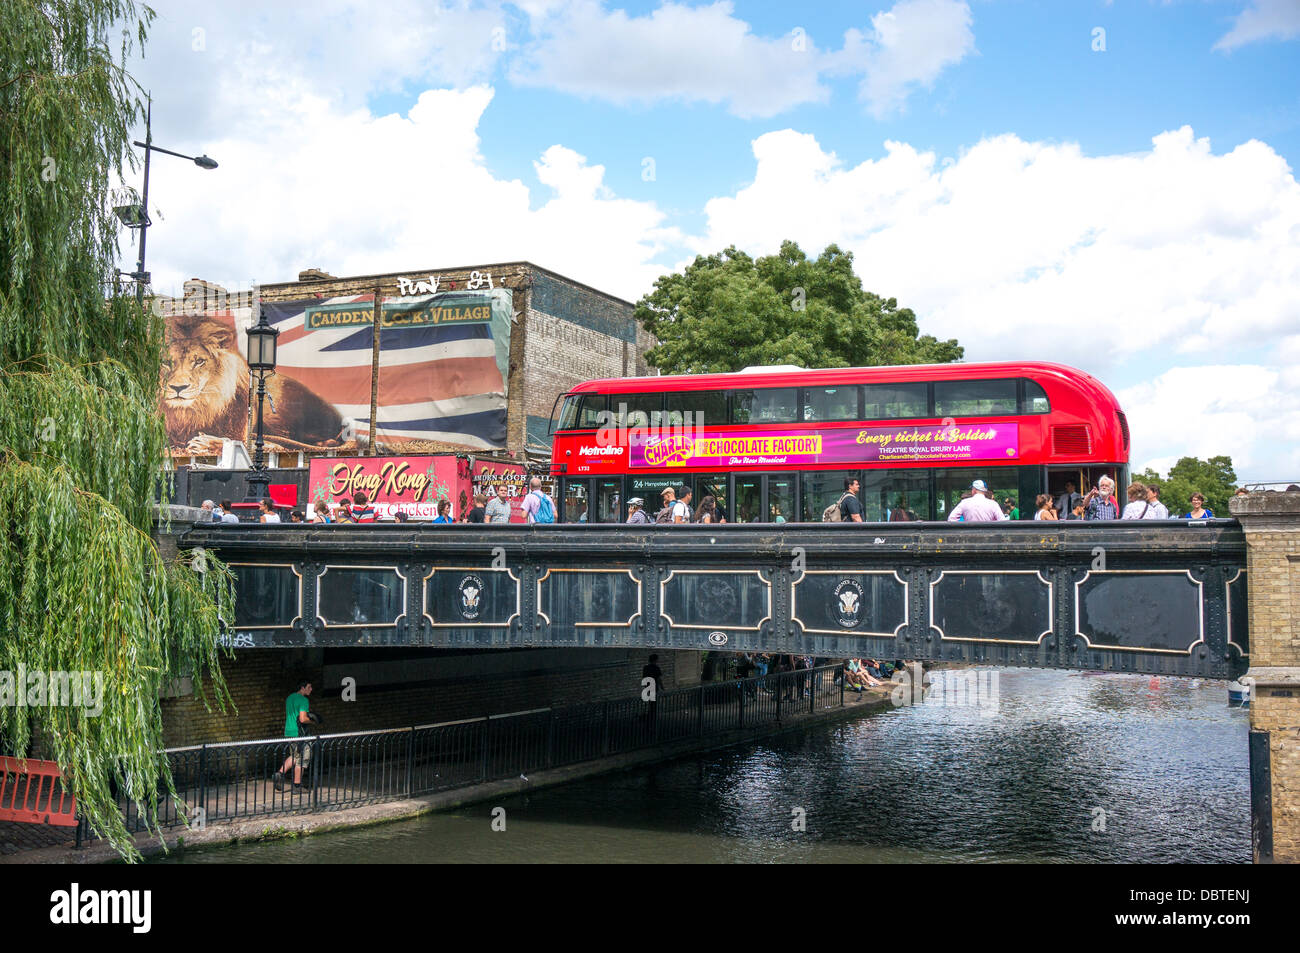 A new-style red Routemaster bus going over Regents Canal bridge, near Camden Market, London, England, UK. - Stock Image